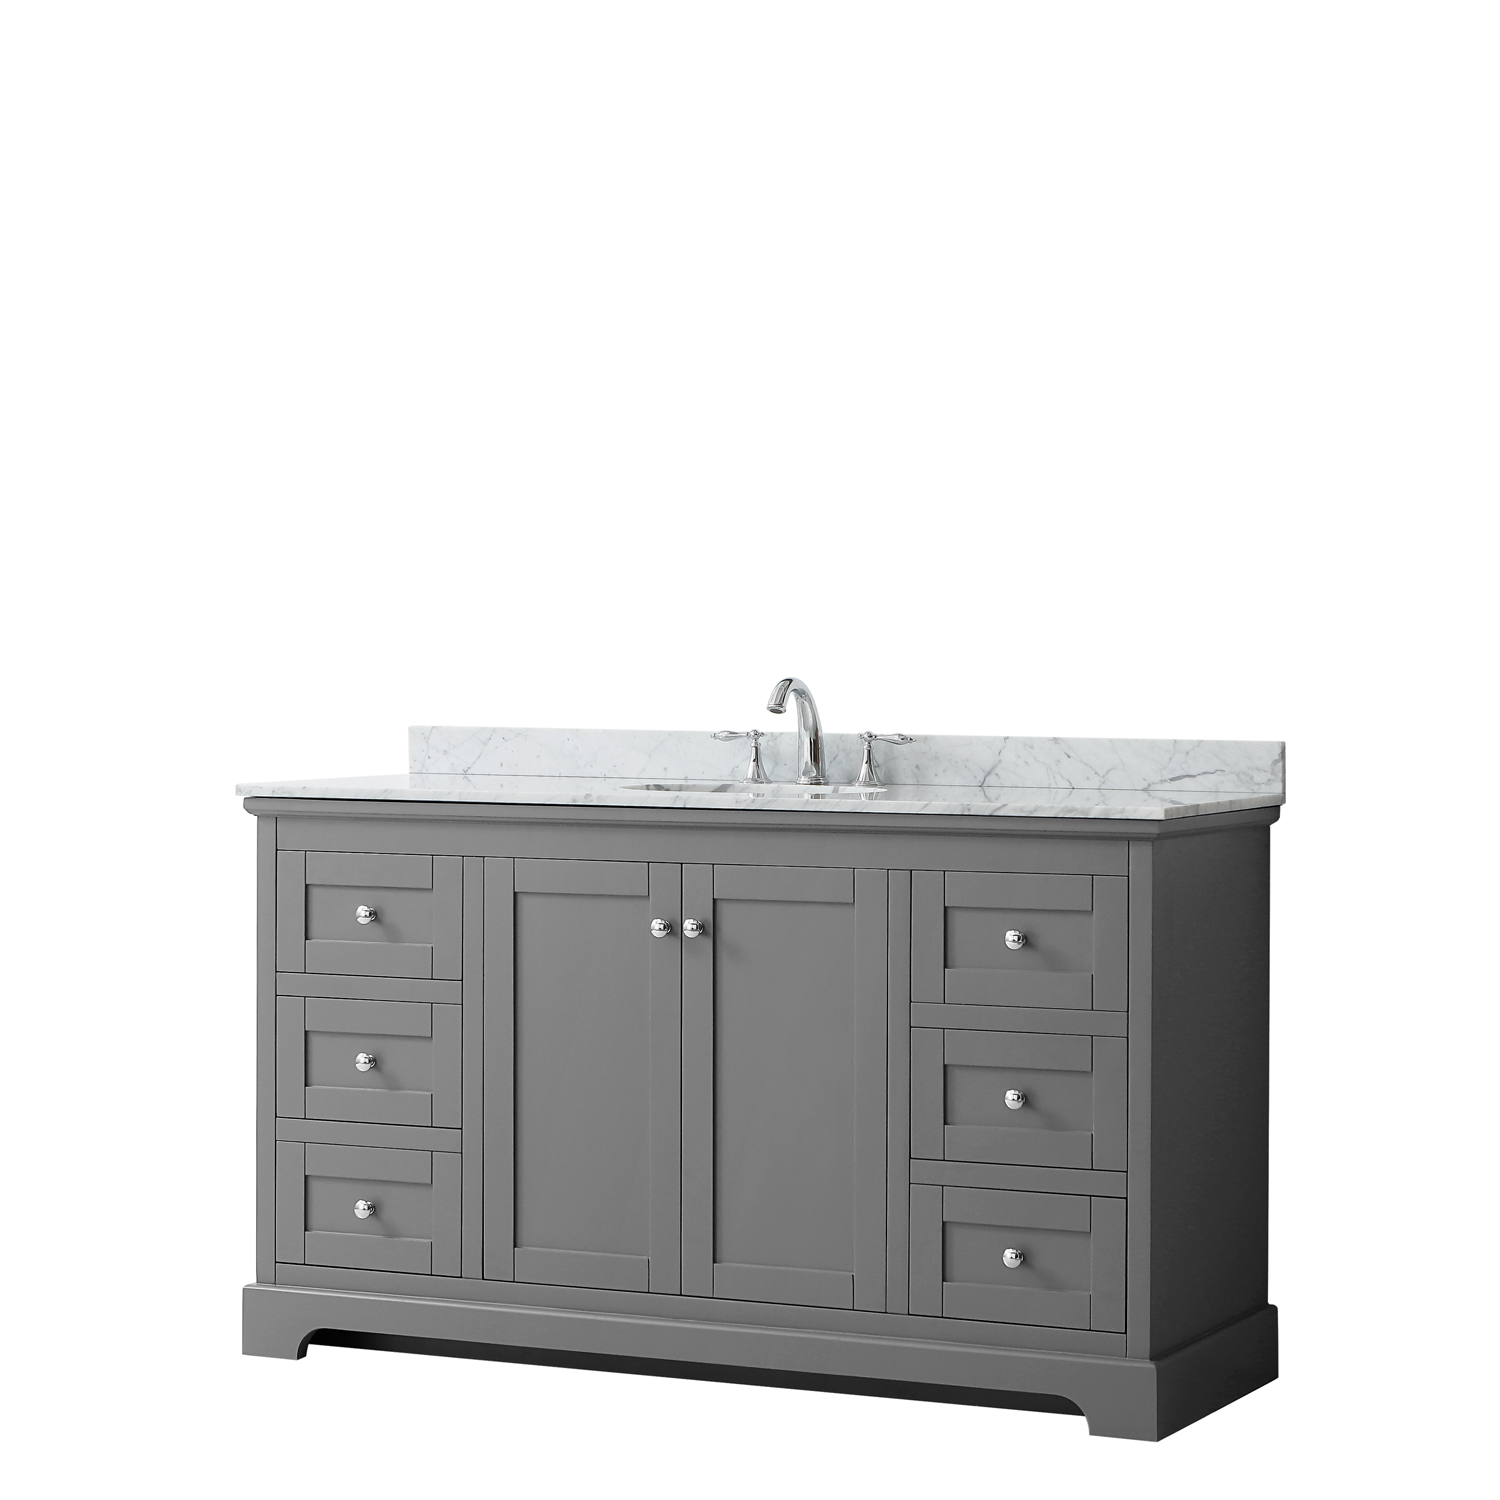 "60"" Single Bathroom Vanity in Dark Gray, No Countertop, No Sink, and No Mirror"